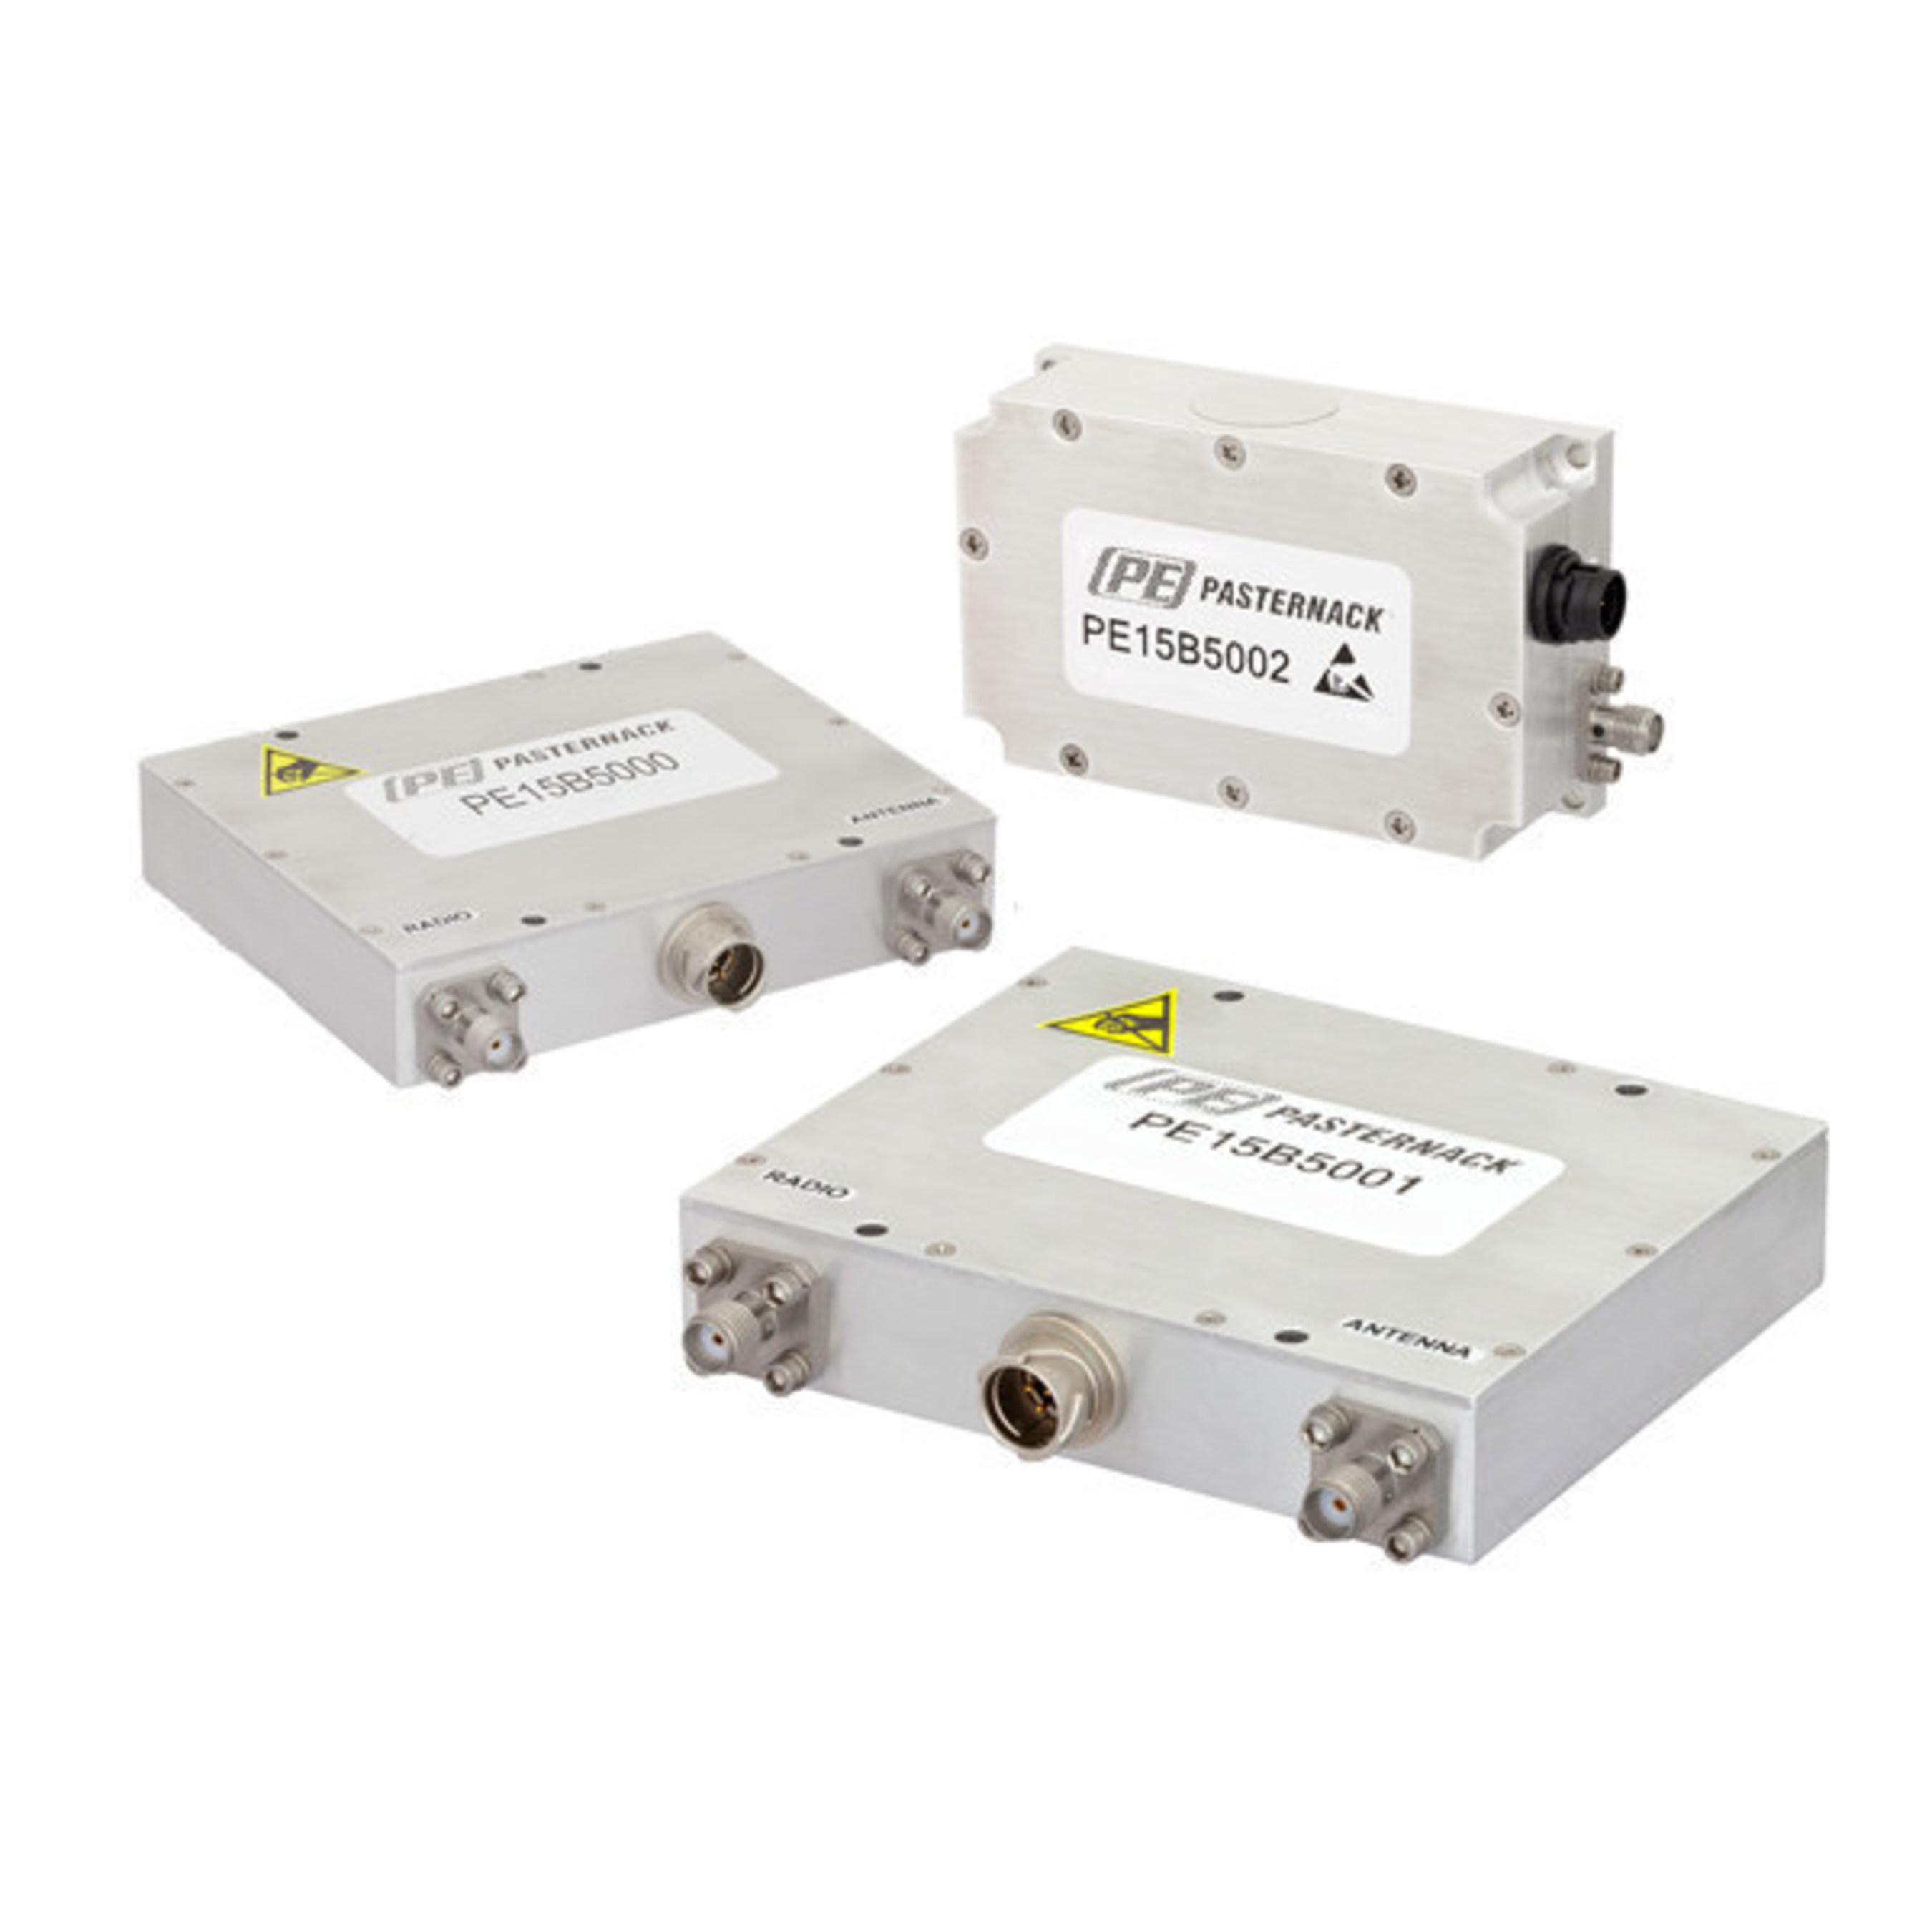 Pasternack Unveils New Line of Coaxial Packaged Bi-Directional Amplifiers